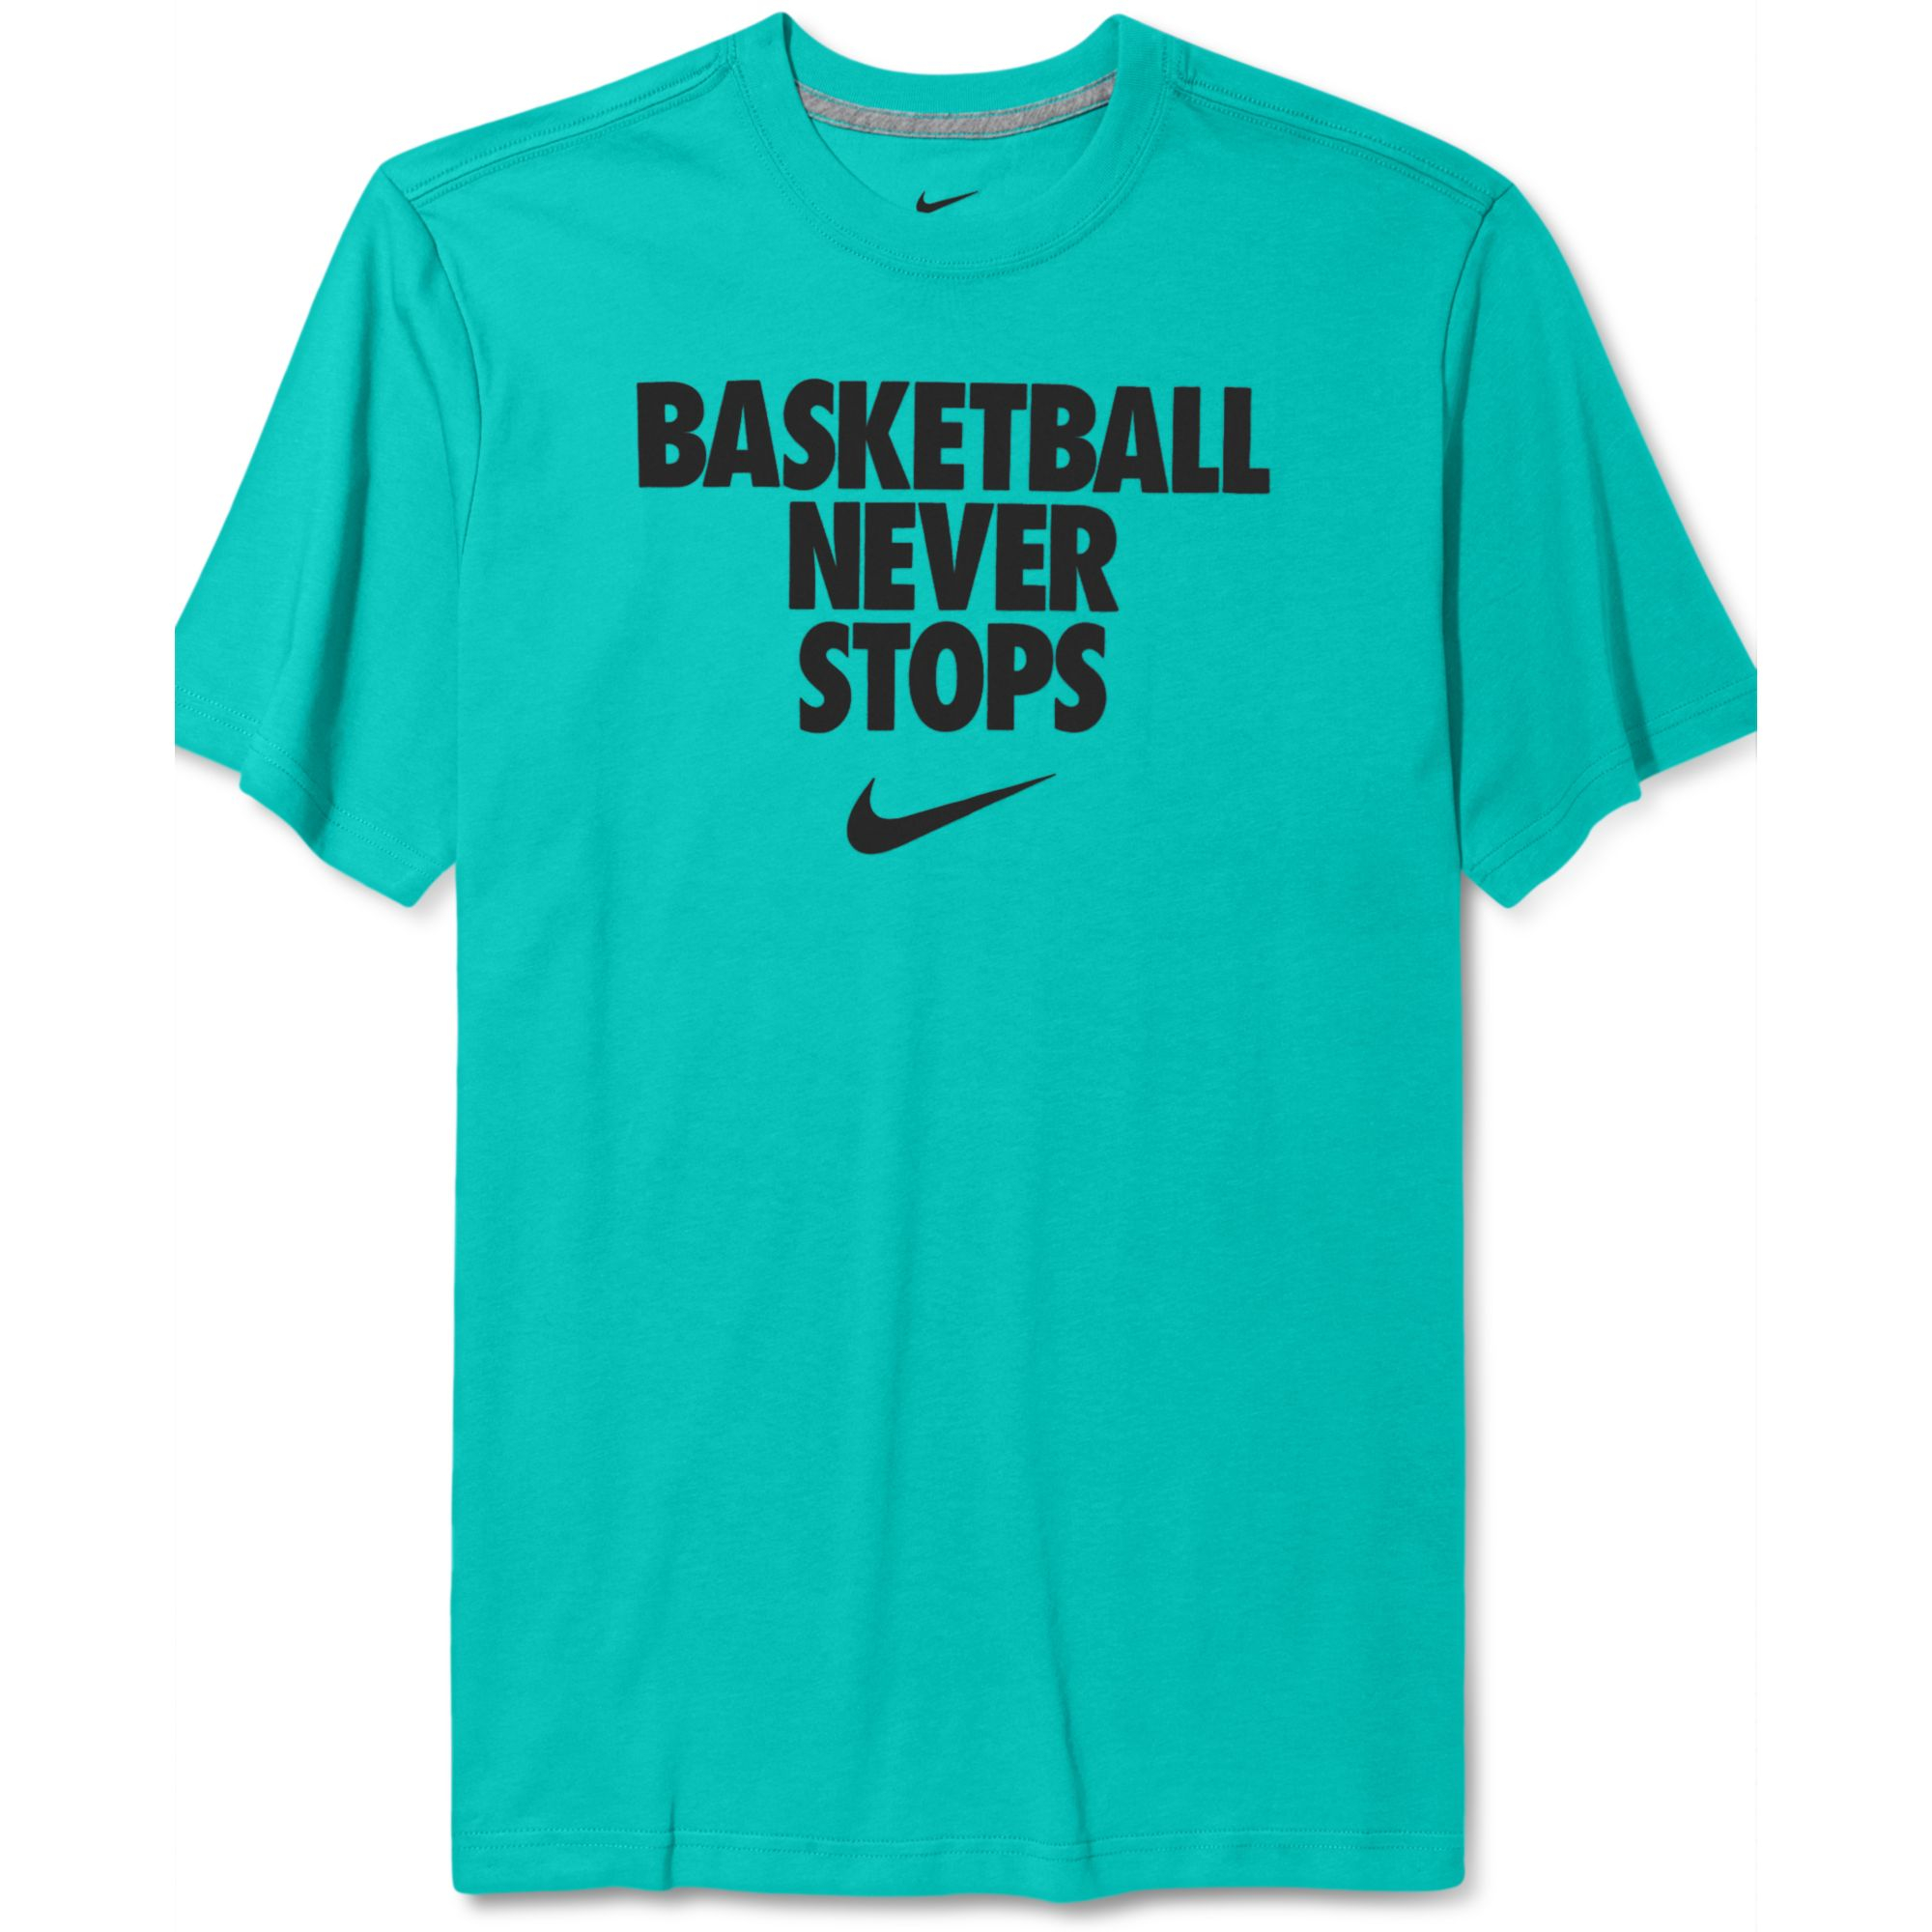 Lyst - Nike Never Stops Basketball Tshirt in Blue for Men Nike Basketball Shirts